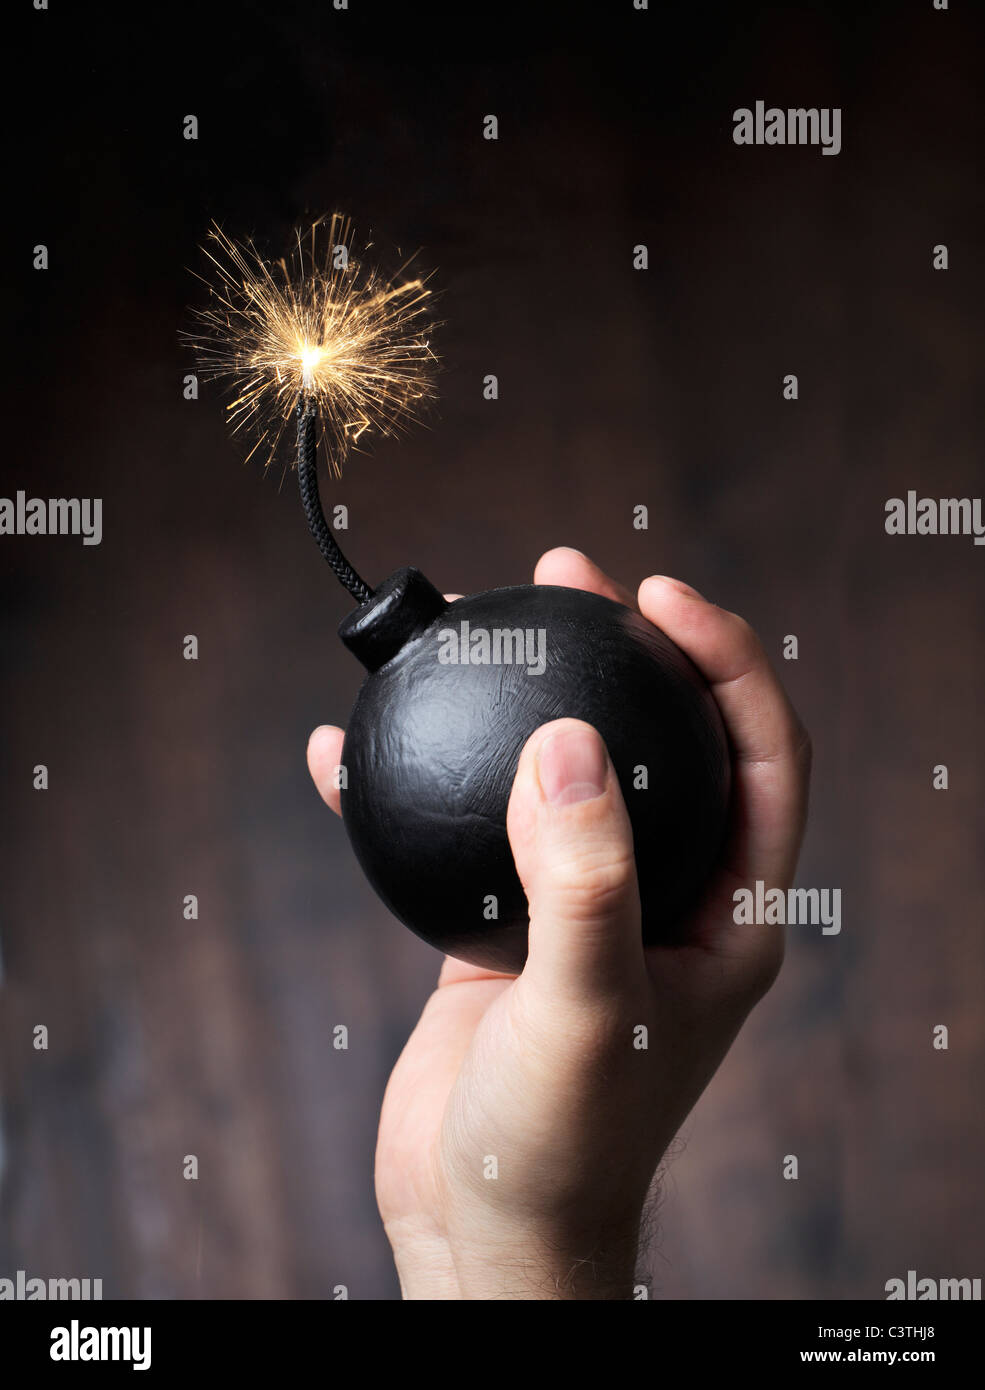 Man holding a bomb in his hand, ready for a throw - Stock Image